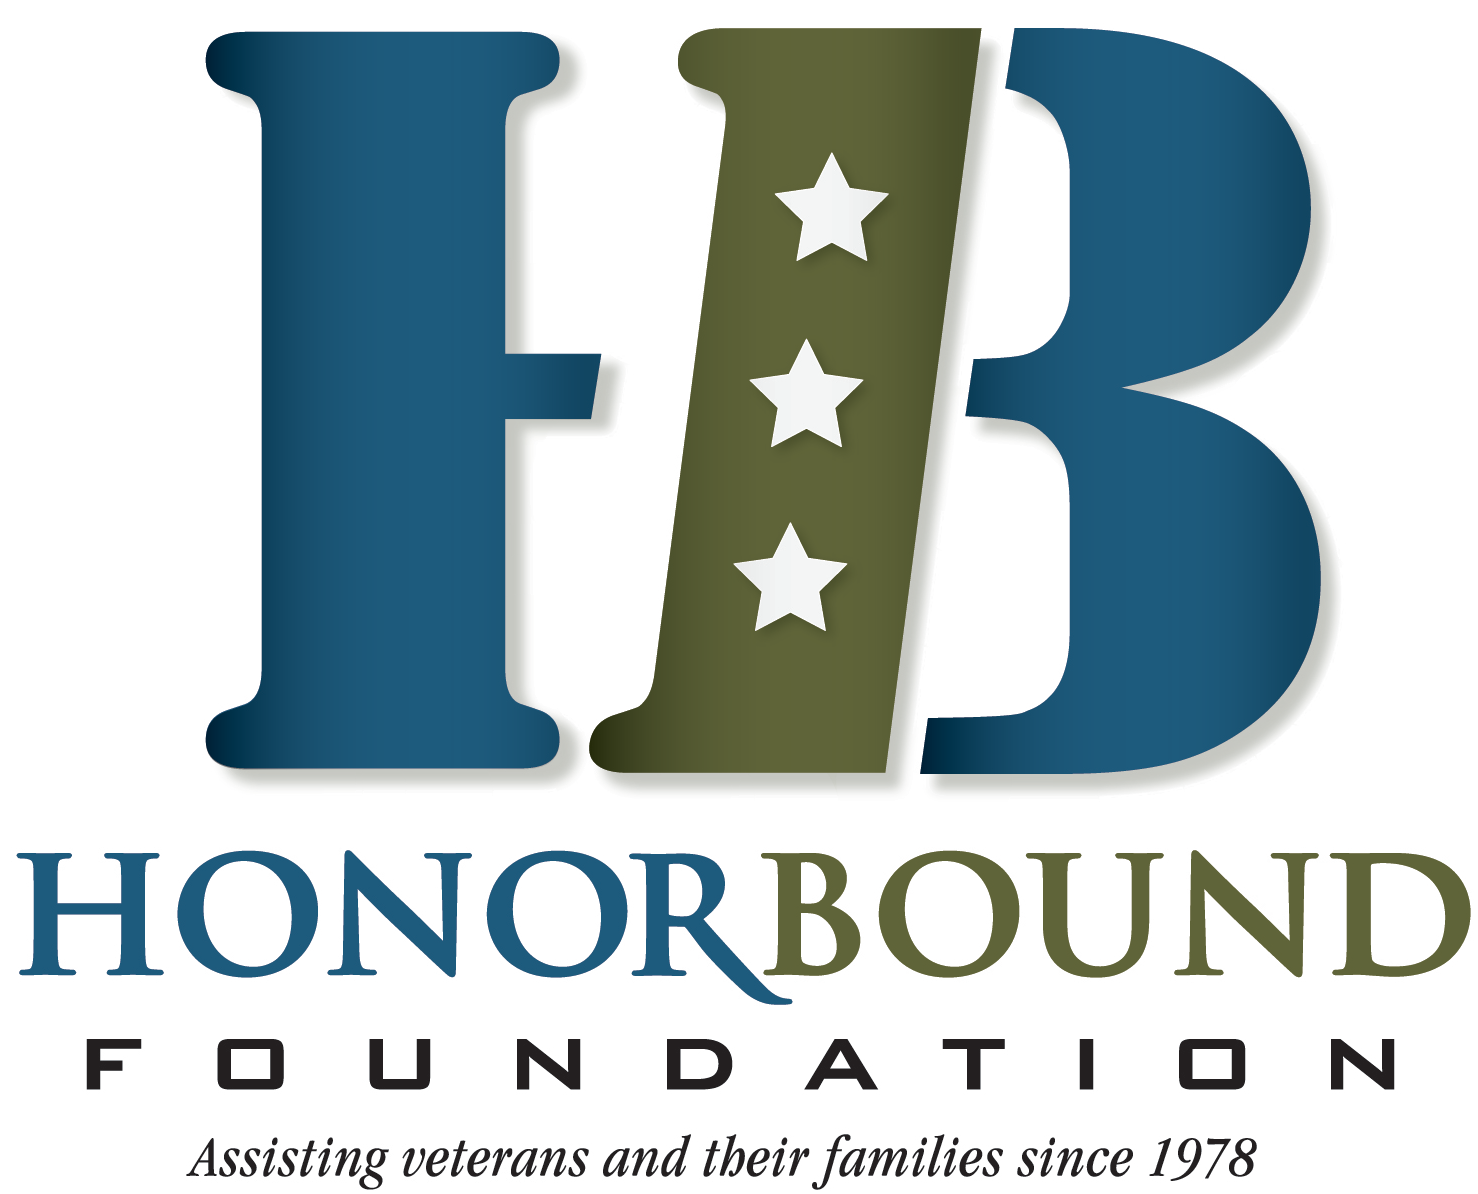 Massachusetts Car Donations - HonorBound Foundation - DonatecarUSA.com